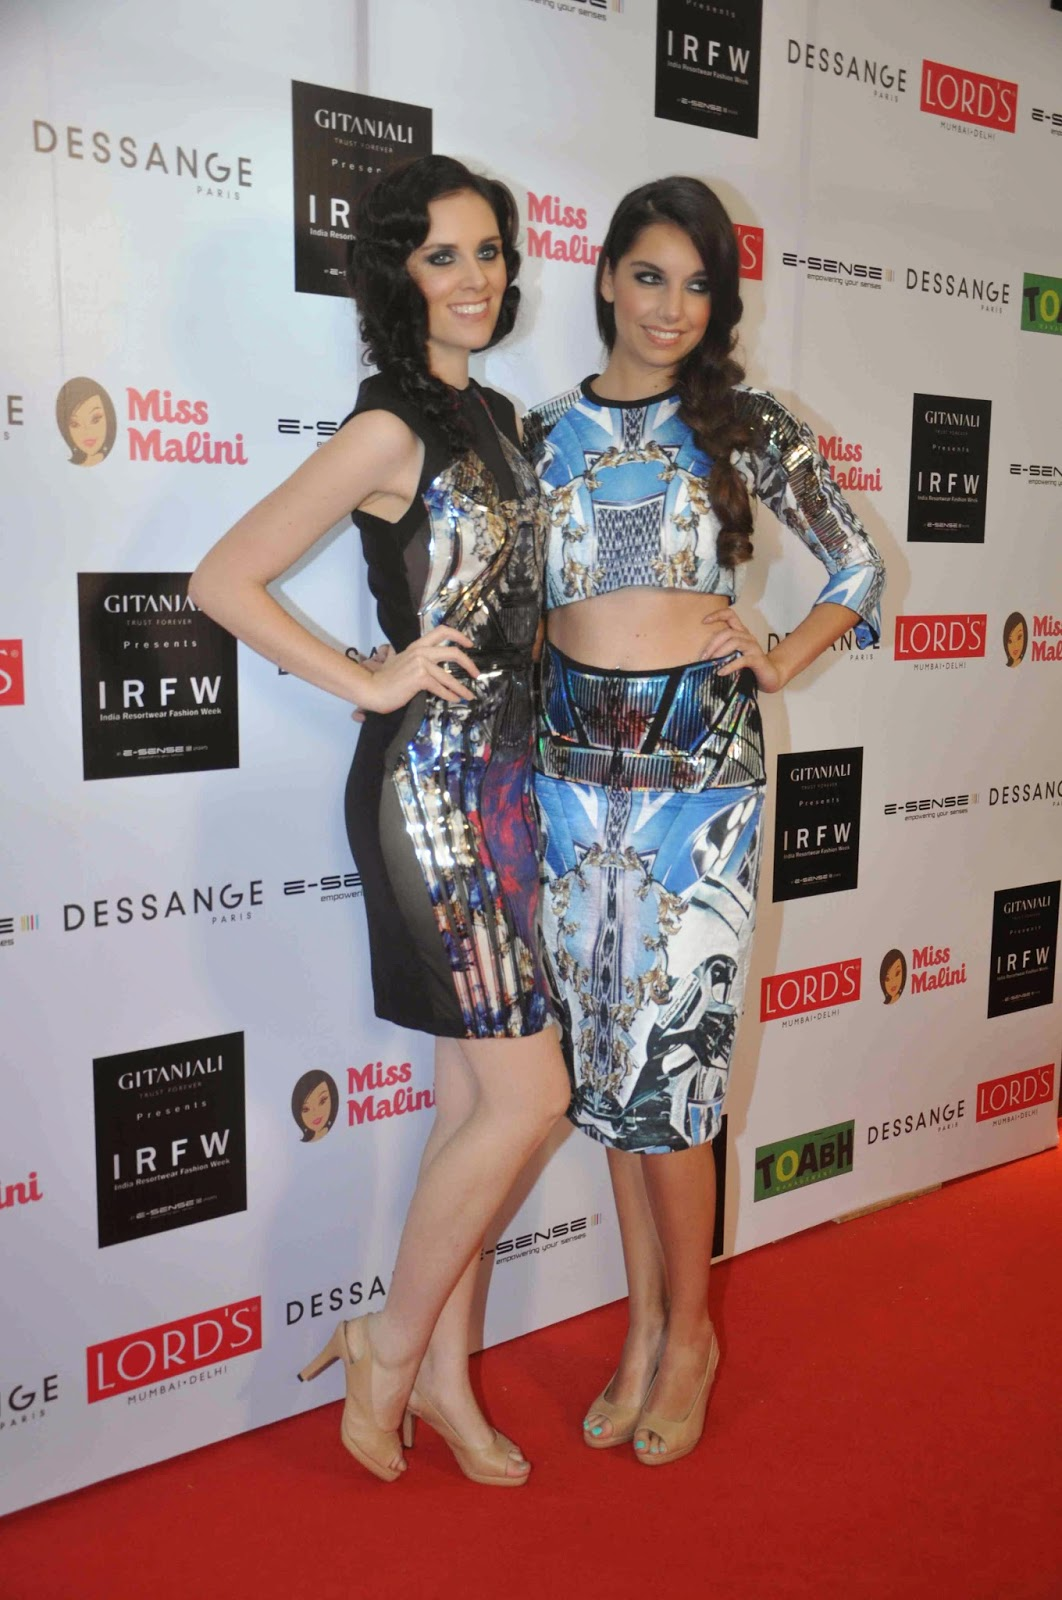 High Quality Bollywood Celebrity Pictures: Karishma Kapoor